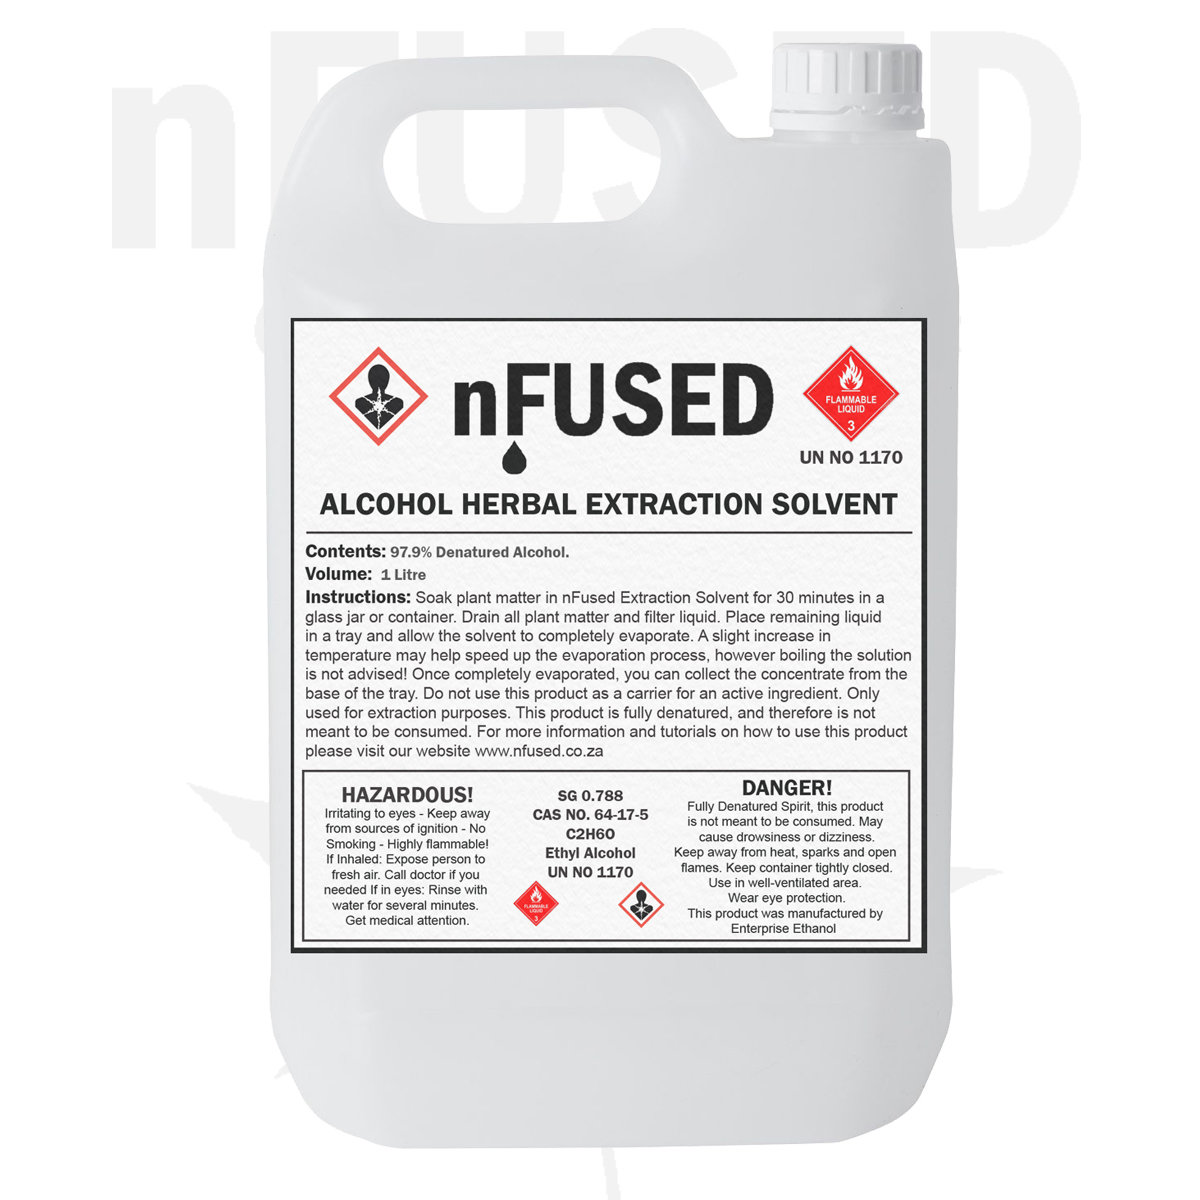 nFused - 1L HERBAL EXTRACTION SOLVENT